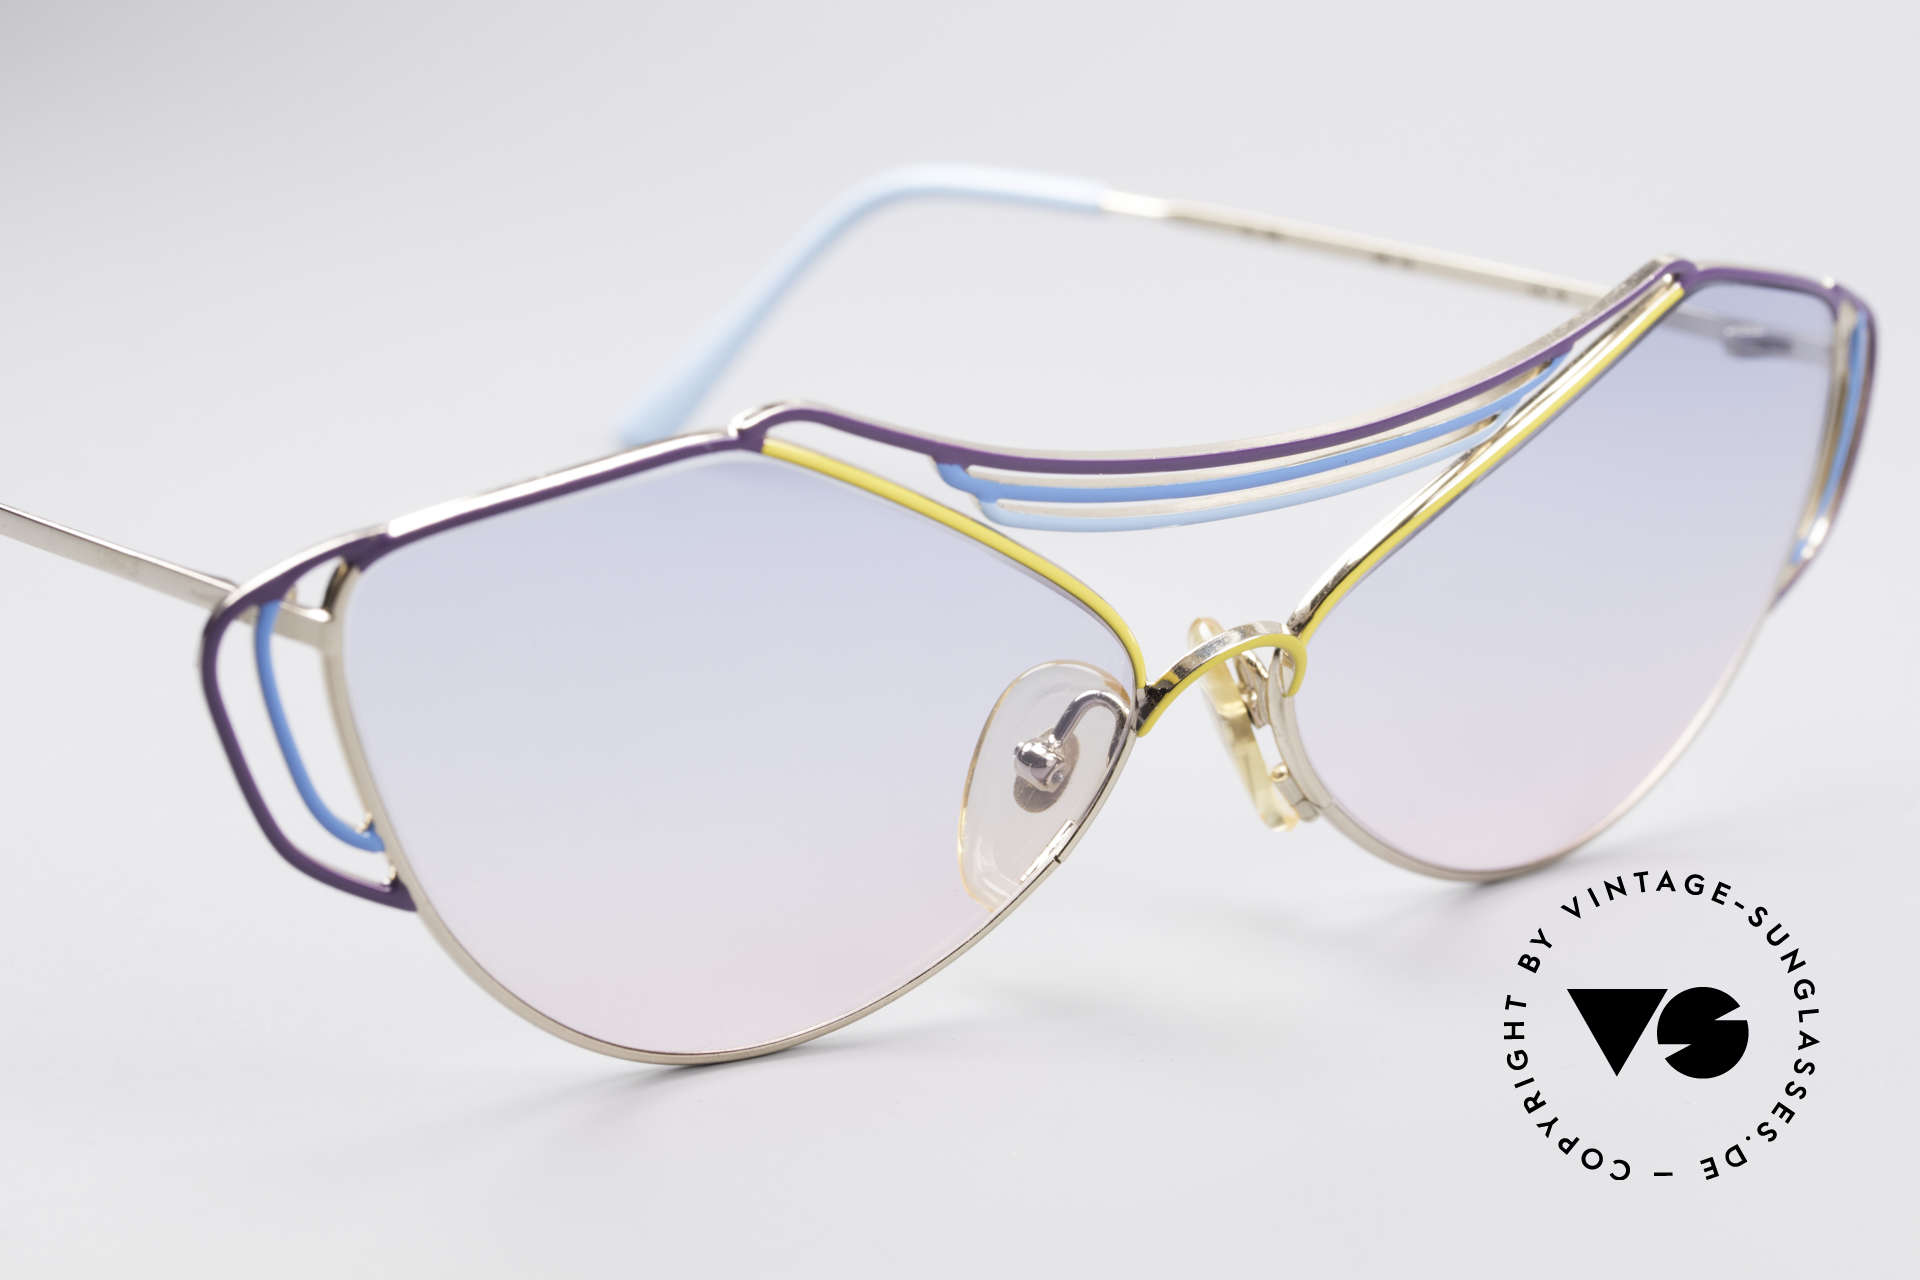 Casanova LC9 80's Art Sunglasses, NO retro specs, but an unique old designer original!, Made for Women